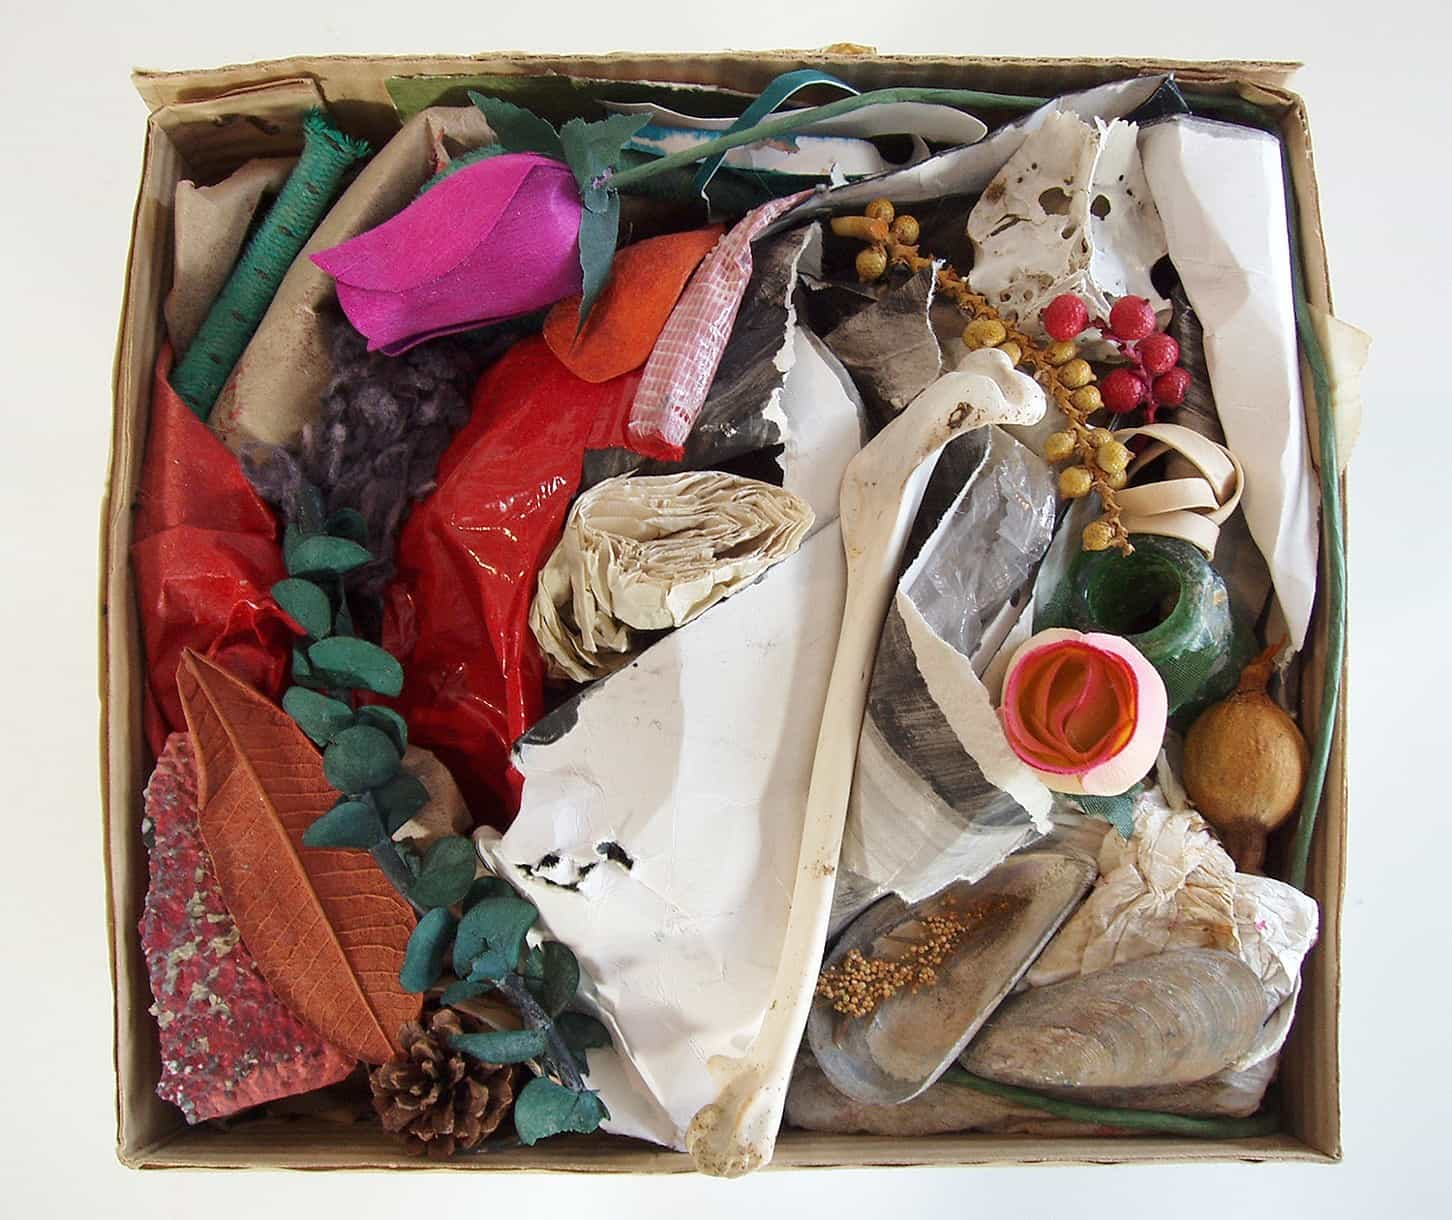 "Prelude, Poem of Vitamins, 2015, ceramic, cardboard, paper, bone, wood, shell, potpourri, tape, charcoal, cotton, rope, rubber, glass, cloth, stone, 11 ½"""" x 9"" x 8 